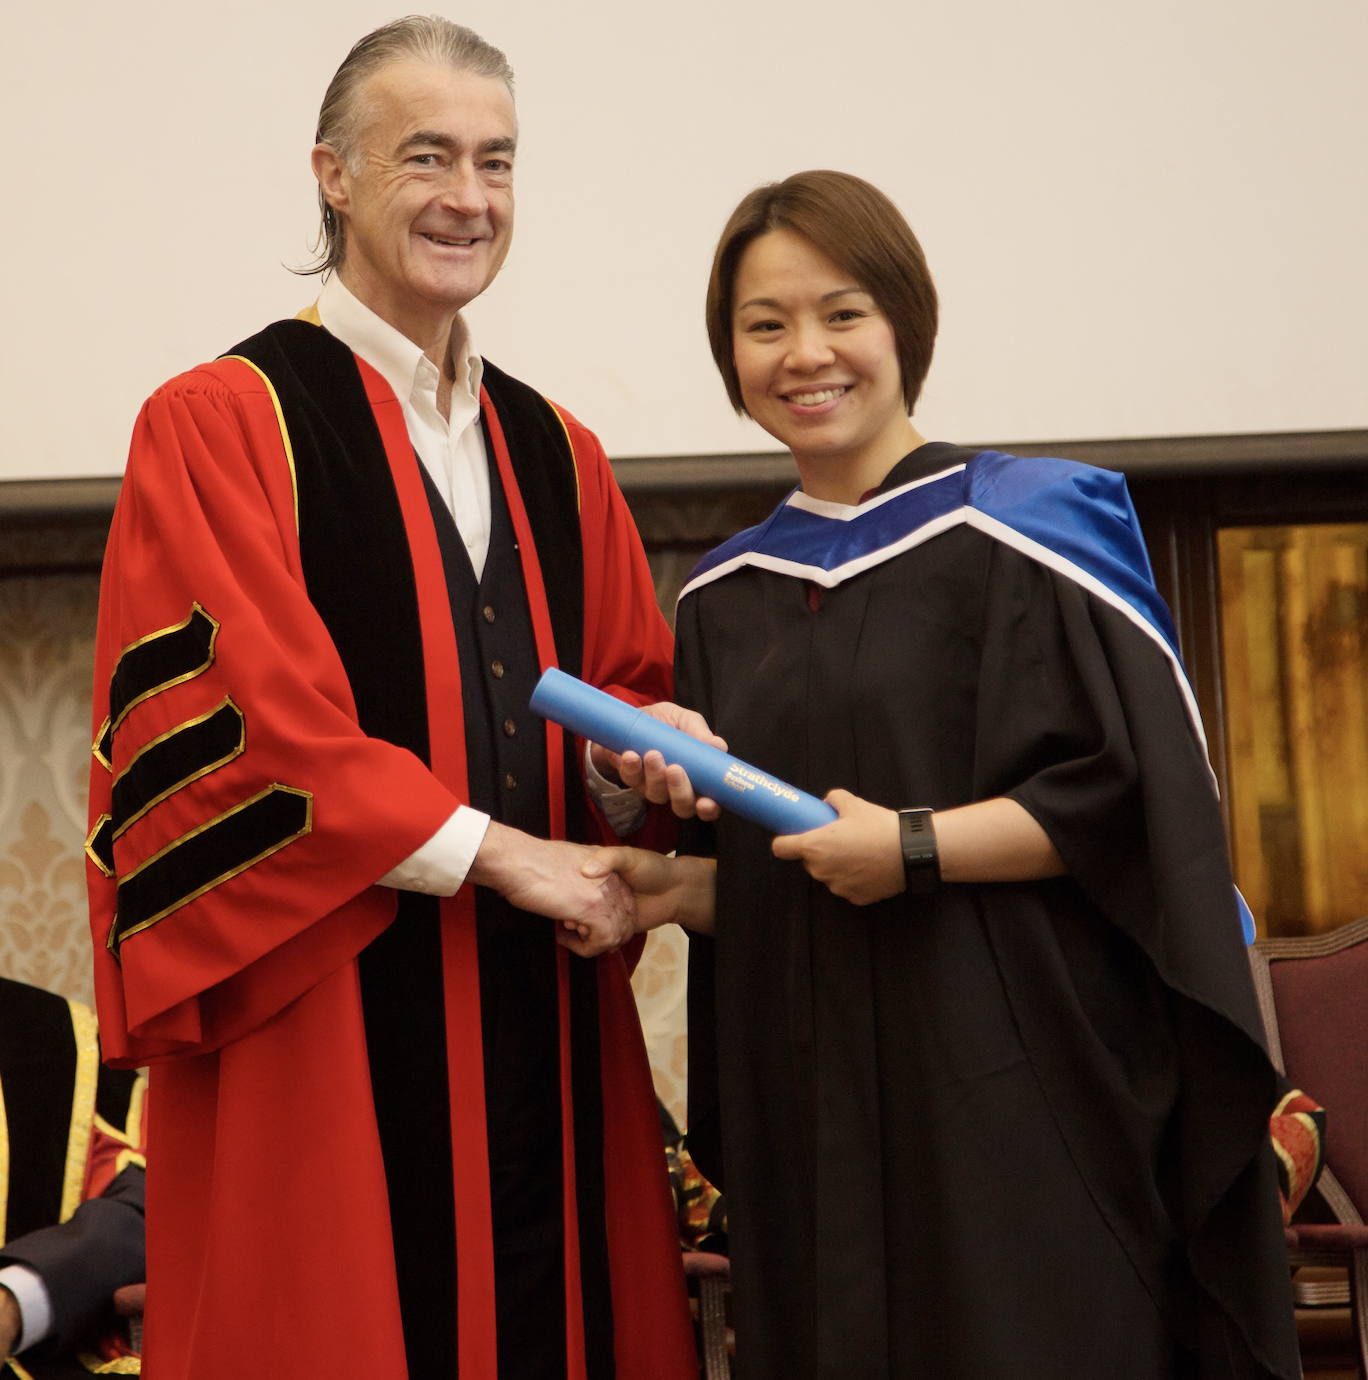 Sarah Lim-Strathclyde MBA Student of the Year 2018